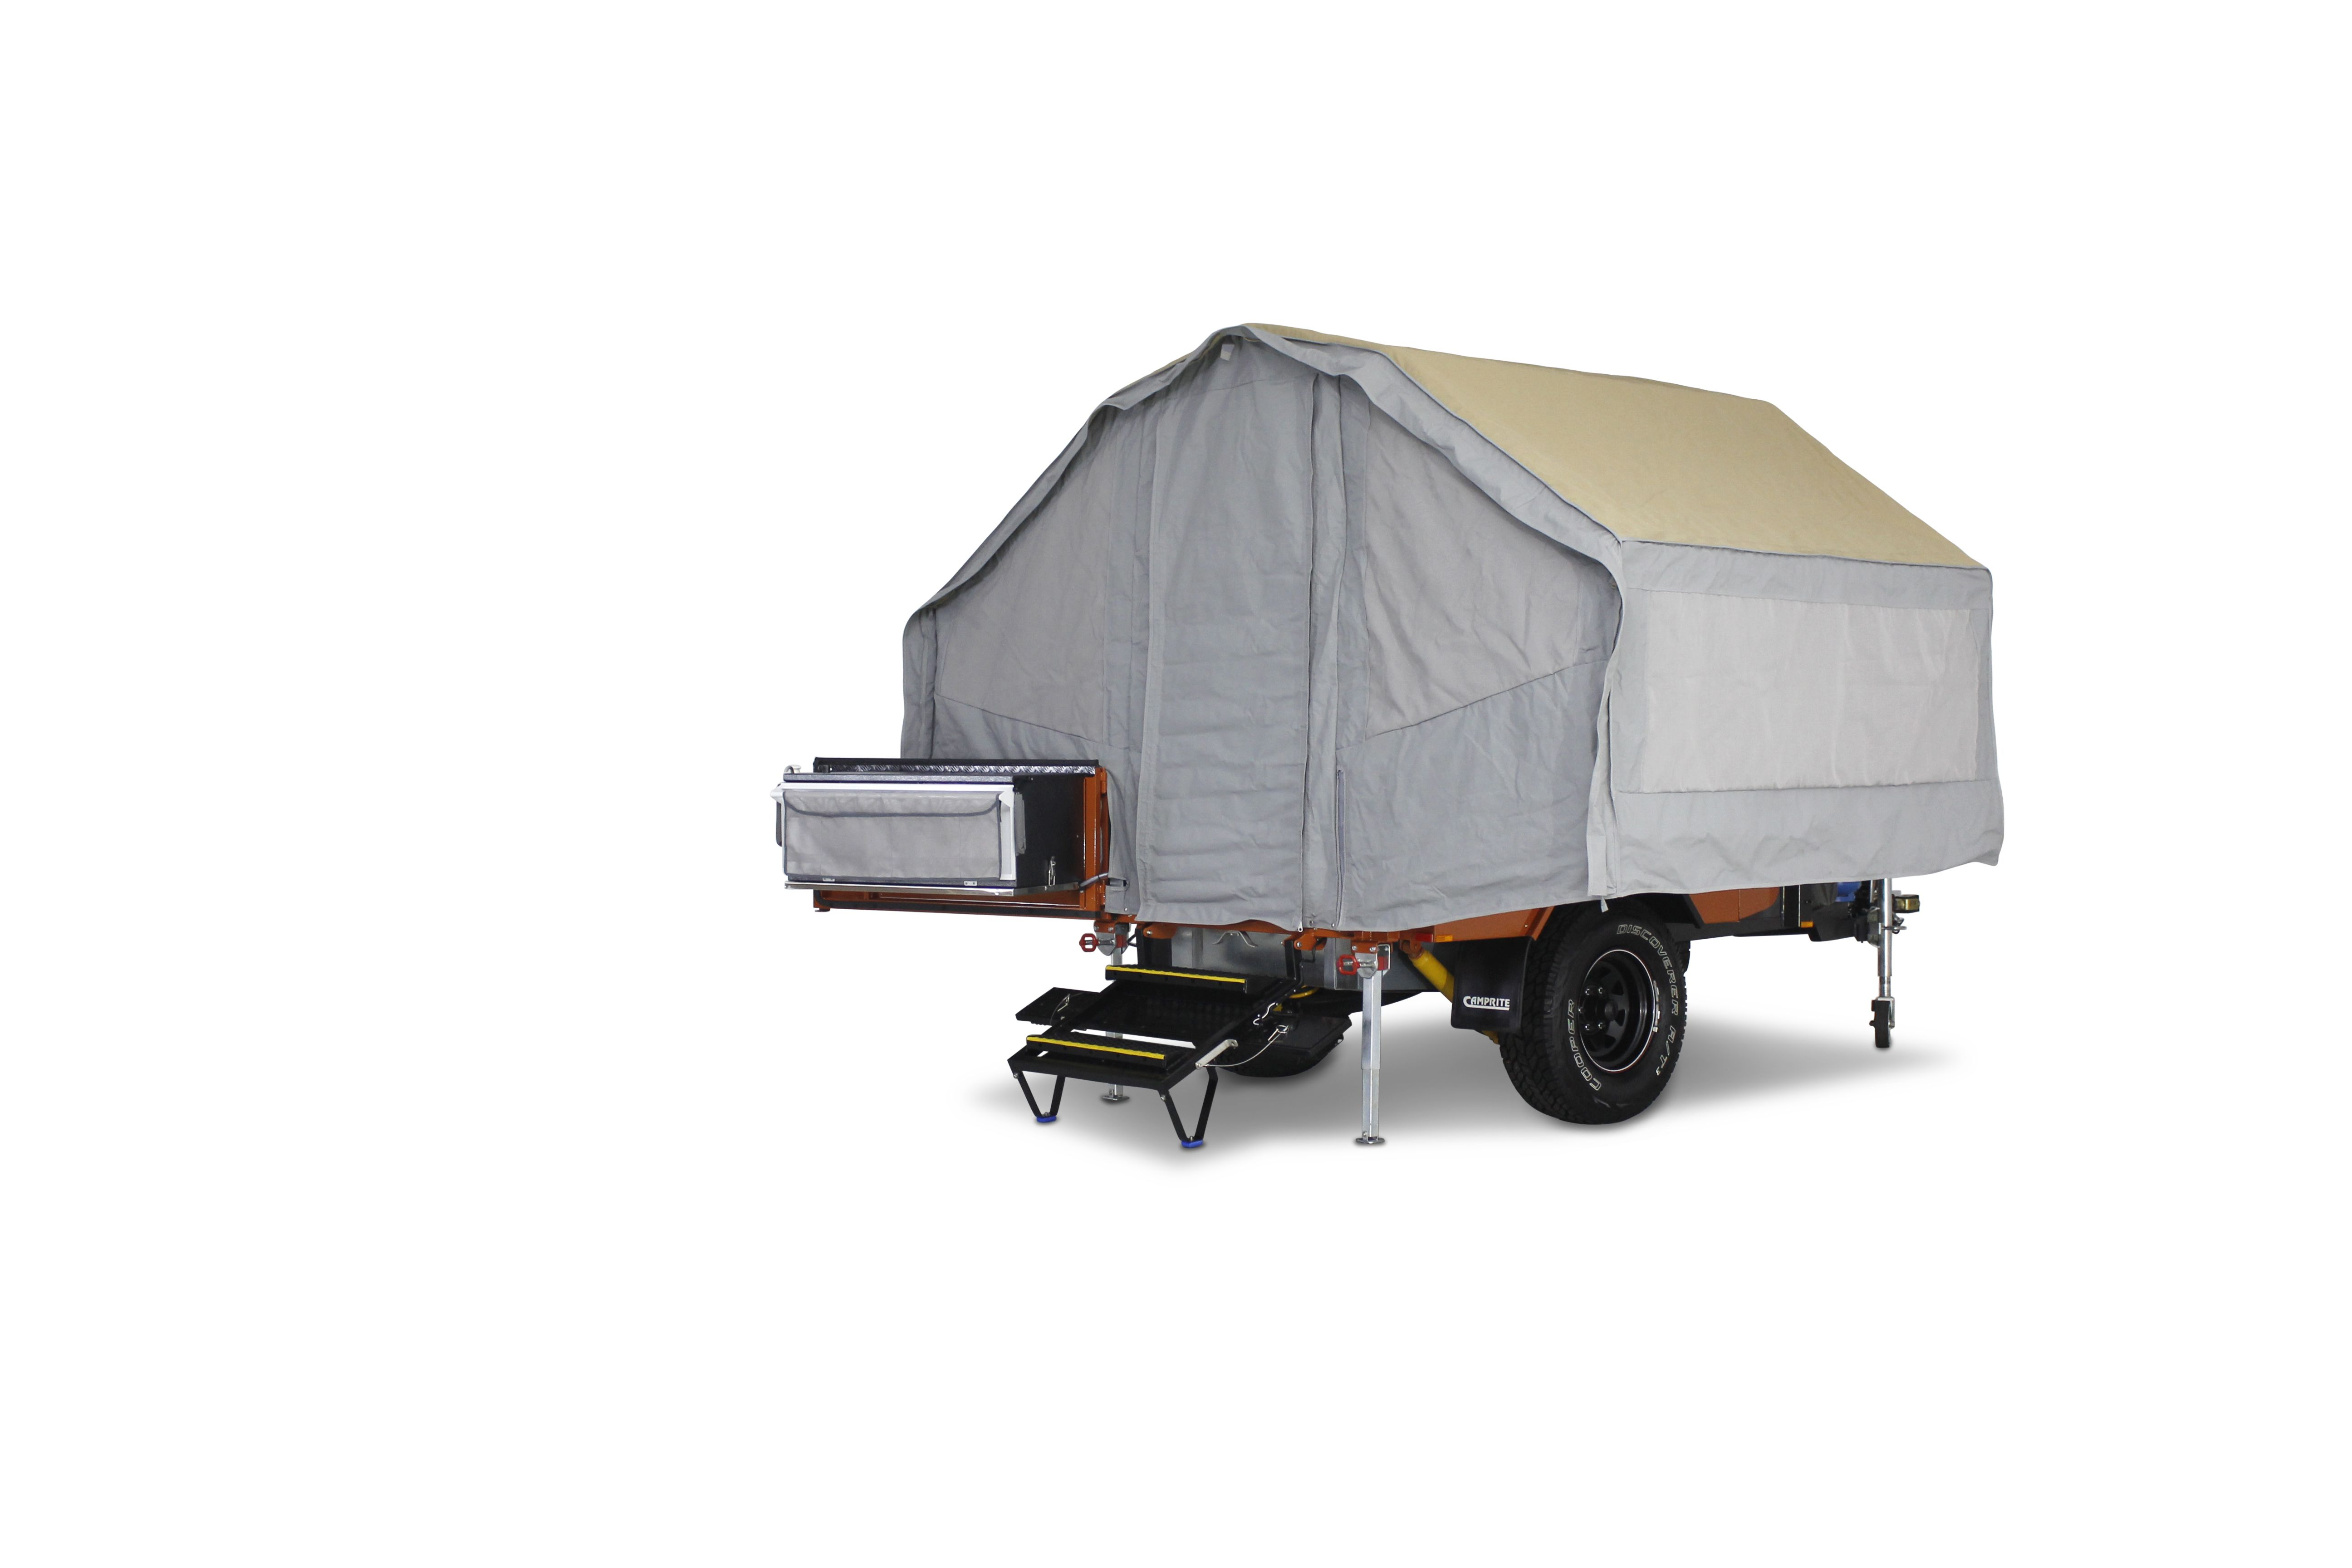 Making a quick overnight stop, or camping in a well shaded campsite, the Camprite Camper Trailer does not need to have the awning attached. Your basic camper can be fully assembled in a matter of minutes. #campingmadeeasy